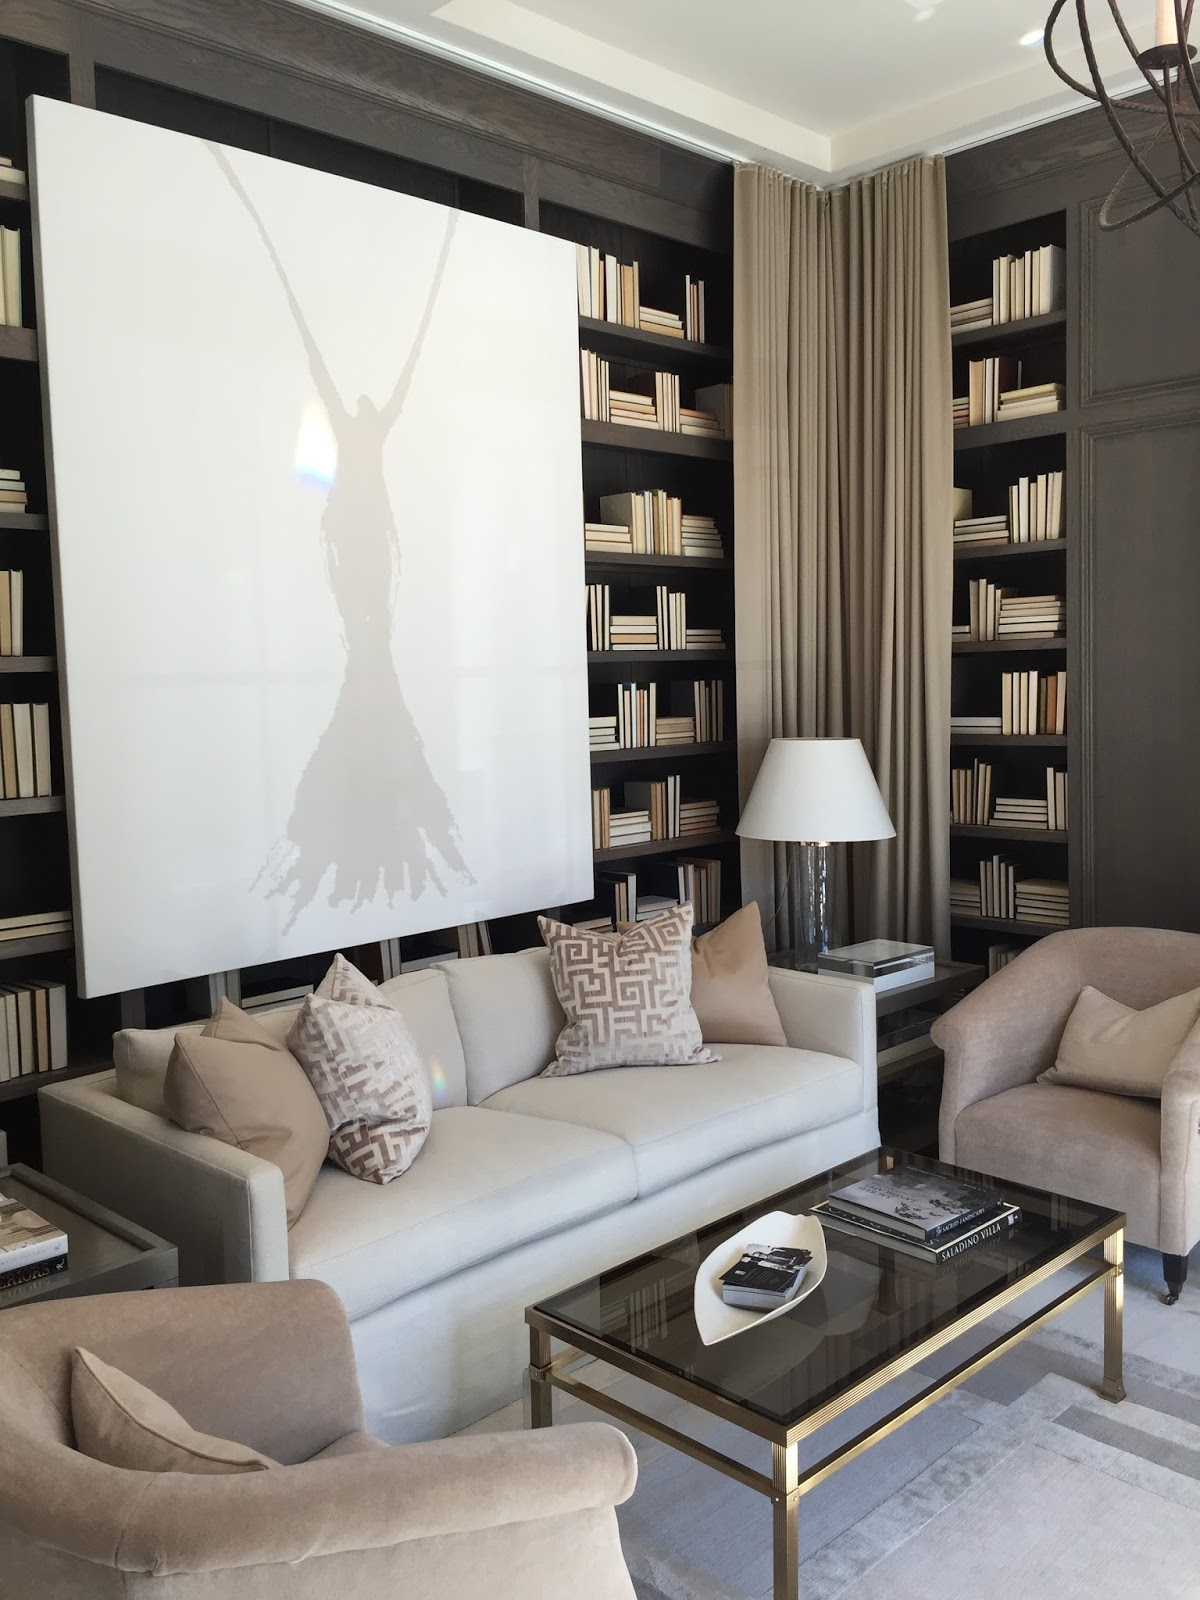 The Study Designed By Robert Brown Of Interior Design Was One My Favortie Rooms